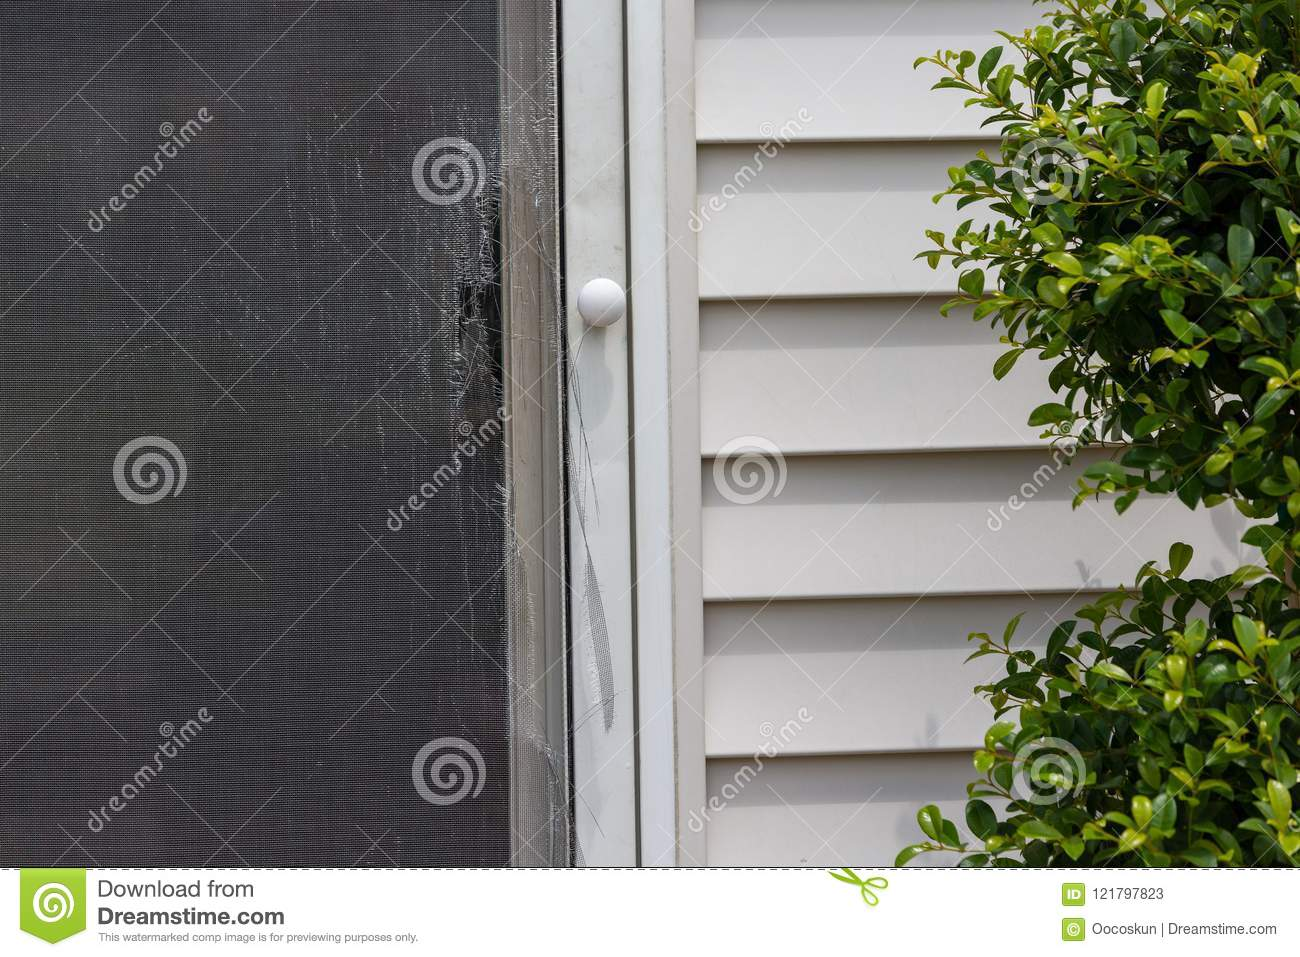 Ripped And Damaged Wire Mesh On A Screen Door Stock Image Image Of